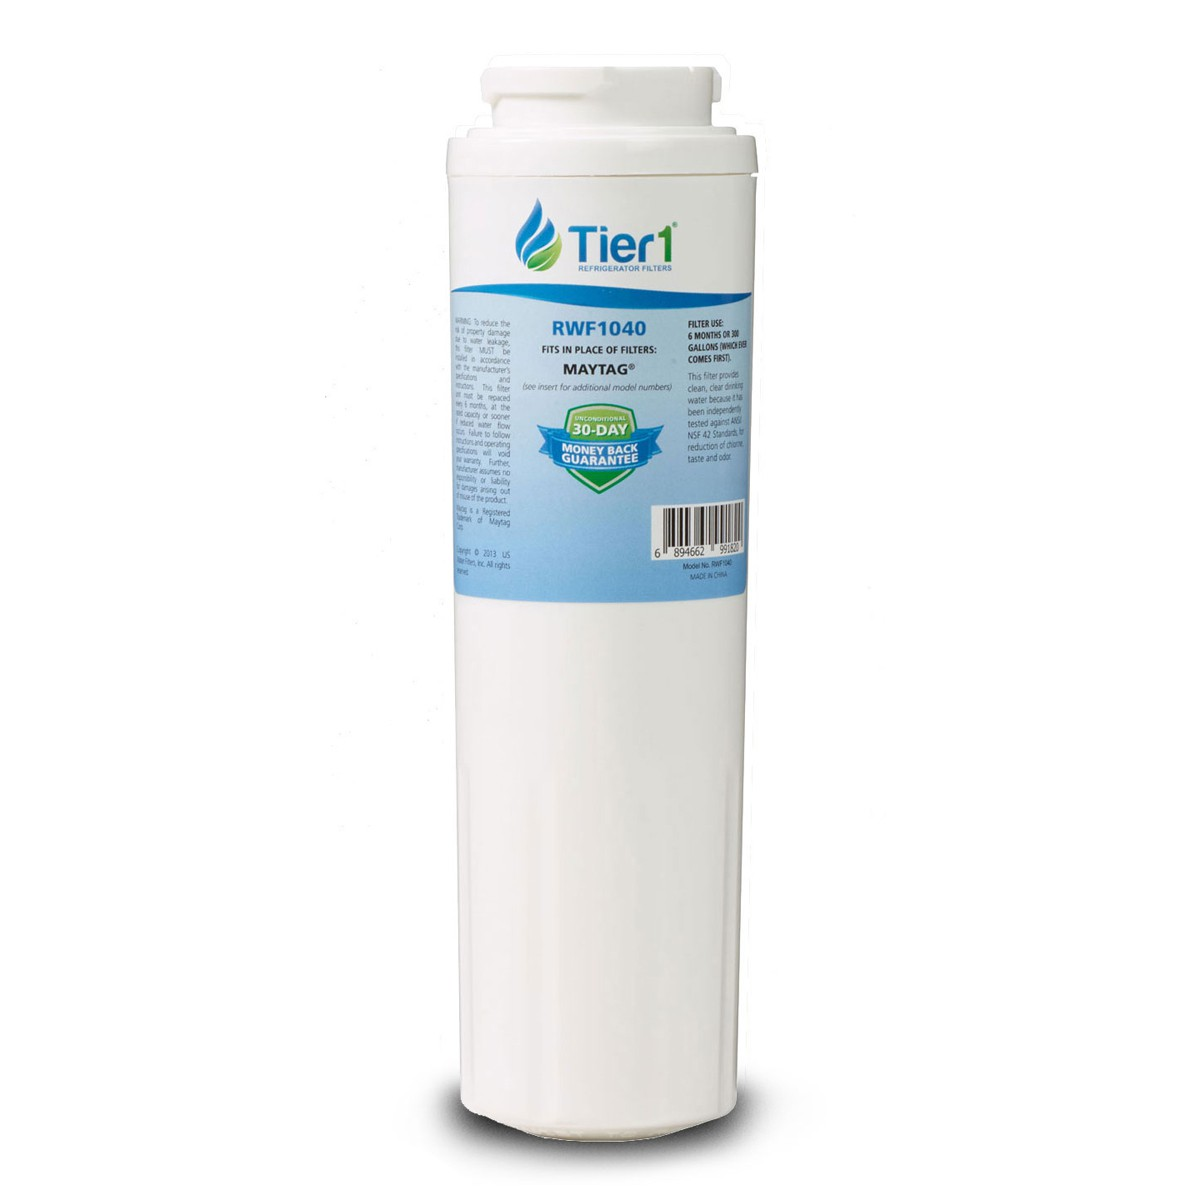 Rf M1 Culligan Replacement Refrigerator Water Filter By Tier1